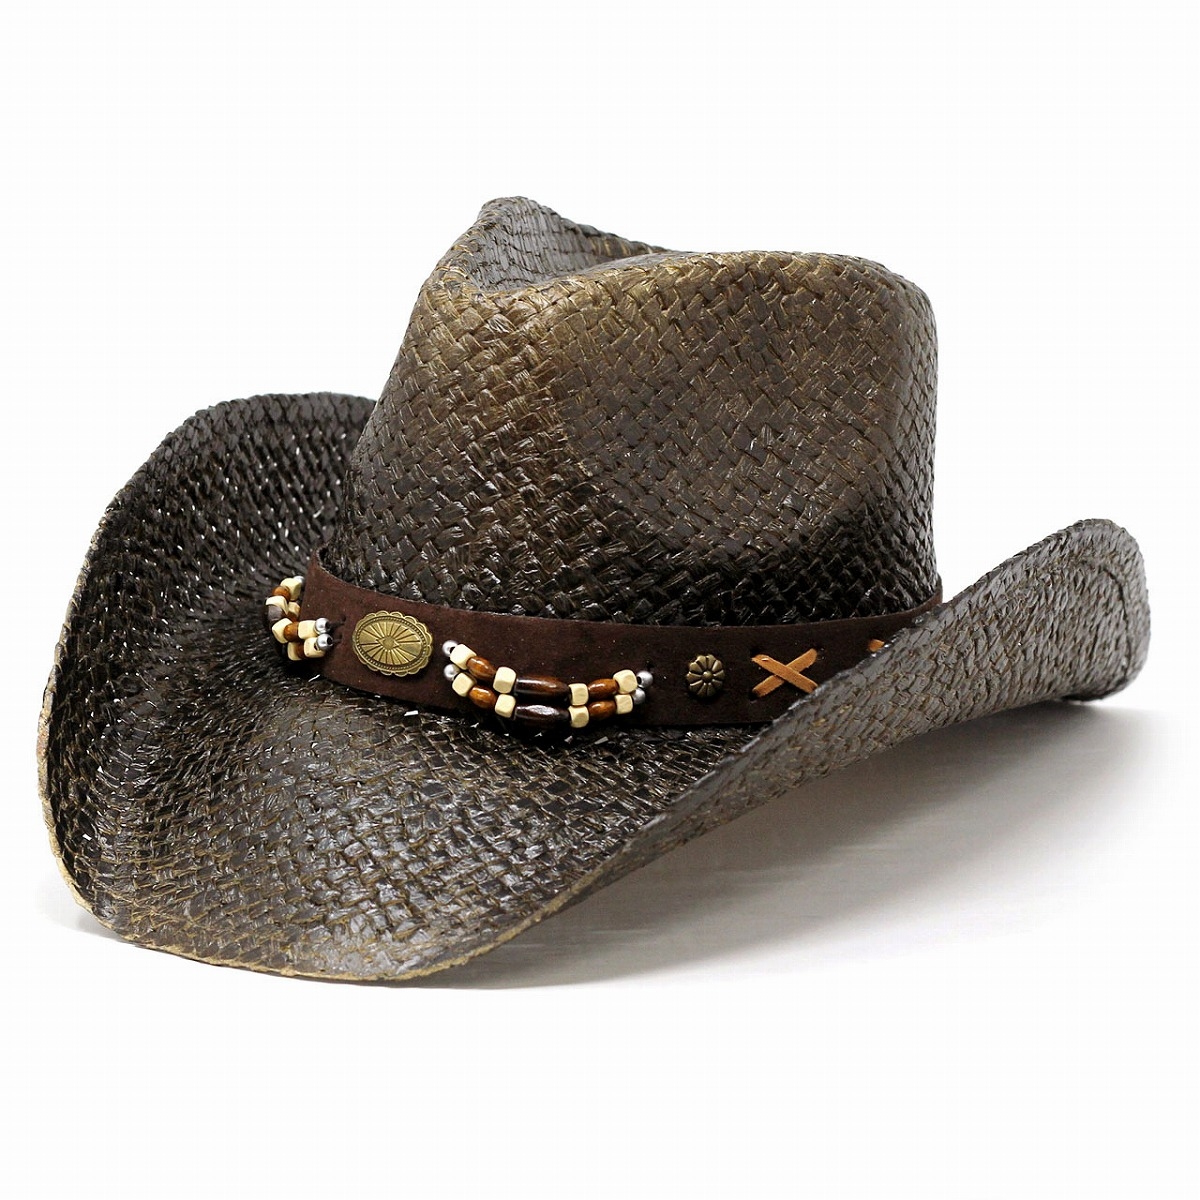 6a62be015aaa6 Straw hat men paper soft cap Lady s summer California Hat Company Inc.  United States western hat hat California hat cowboy Y ditch rim natural  broad-brimmed ...